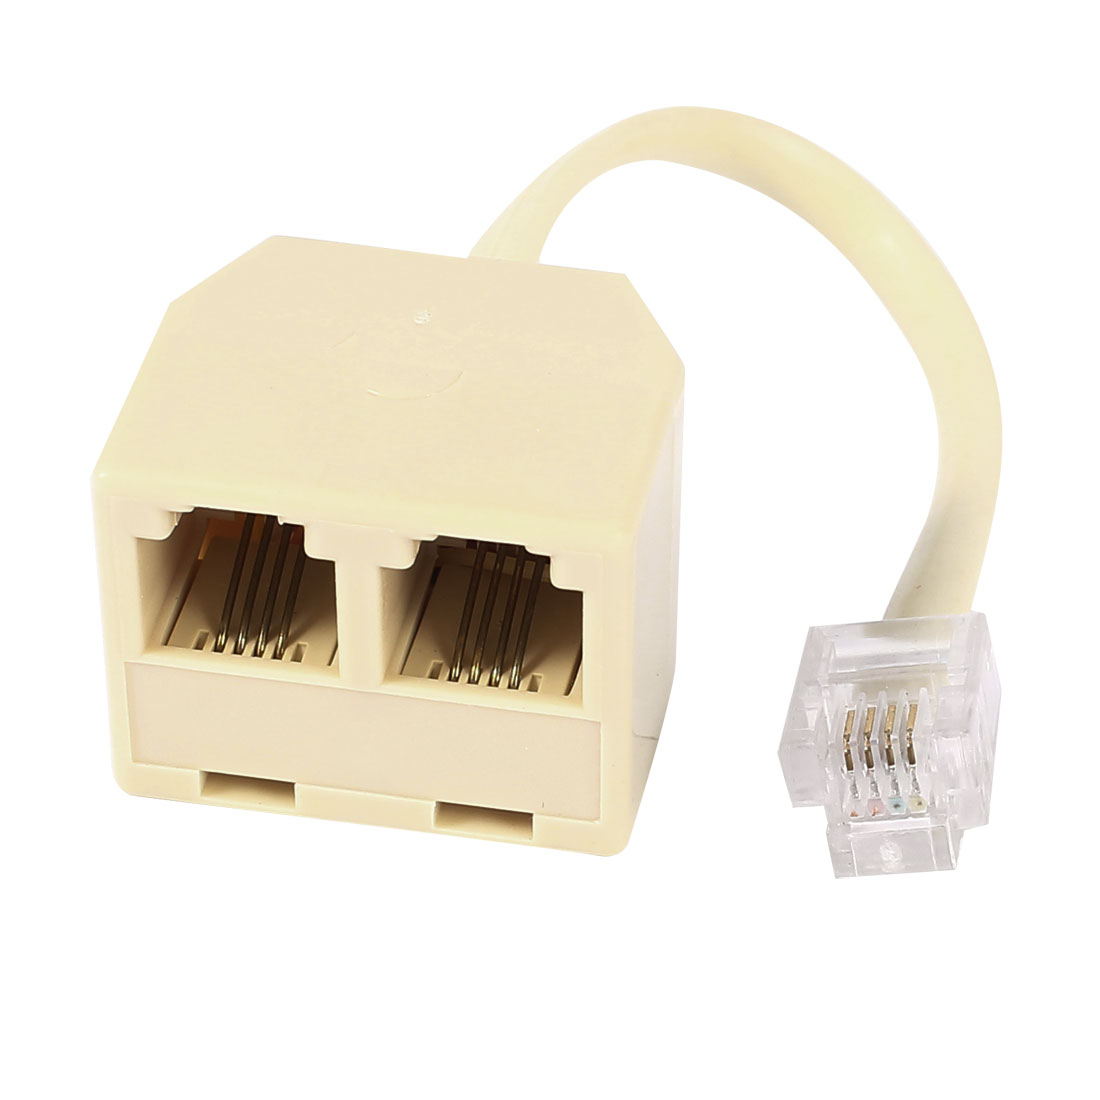 RJ11 6P4C Male to Dual Female M/F Splitter Converter Telephone Adapter Cable Beige